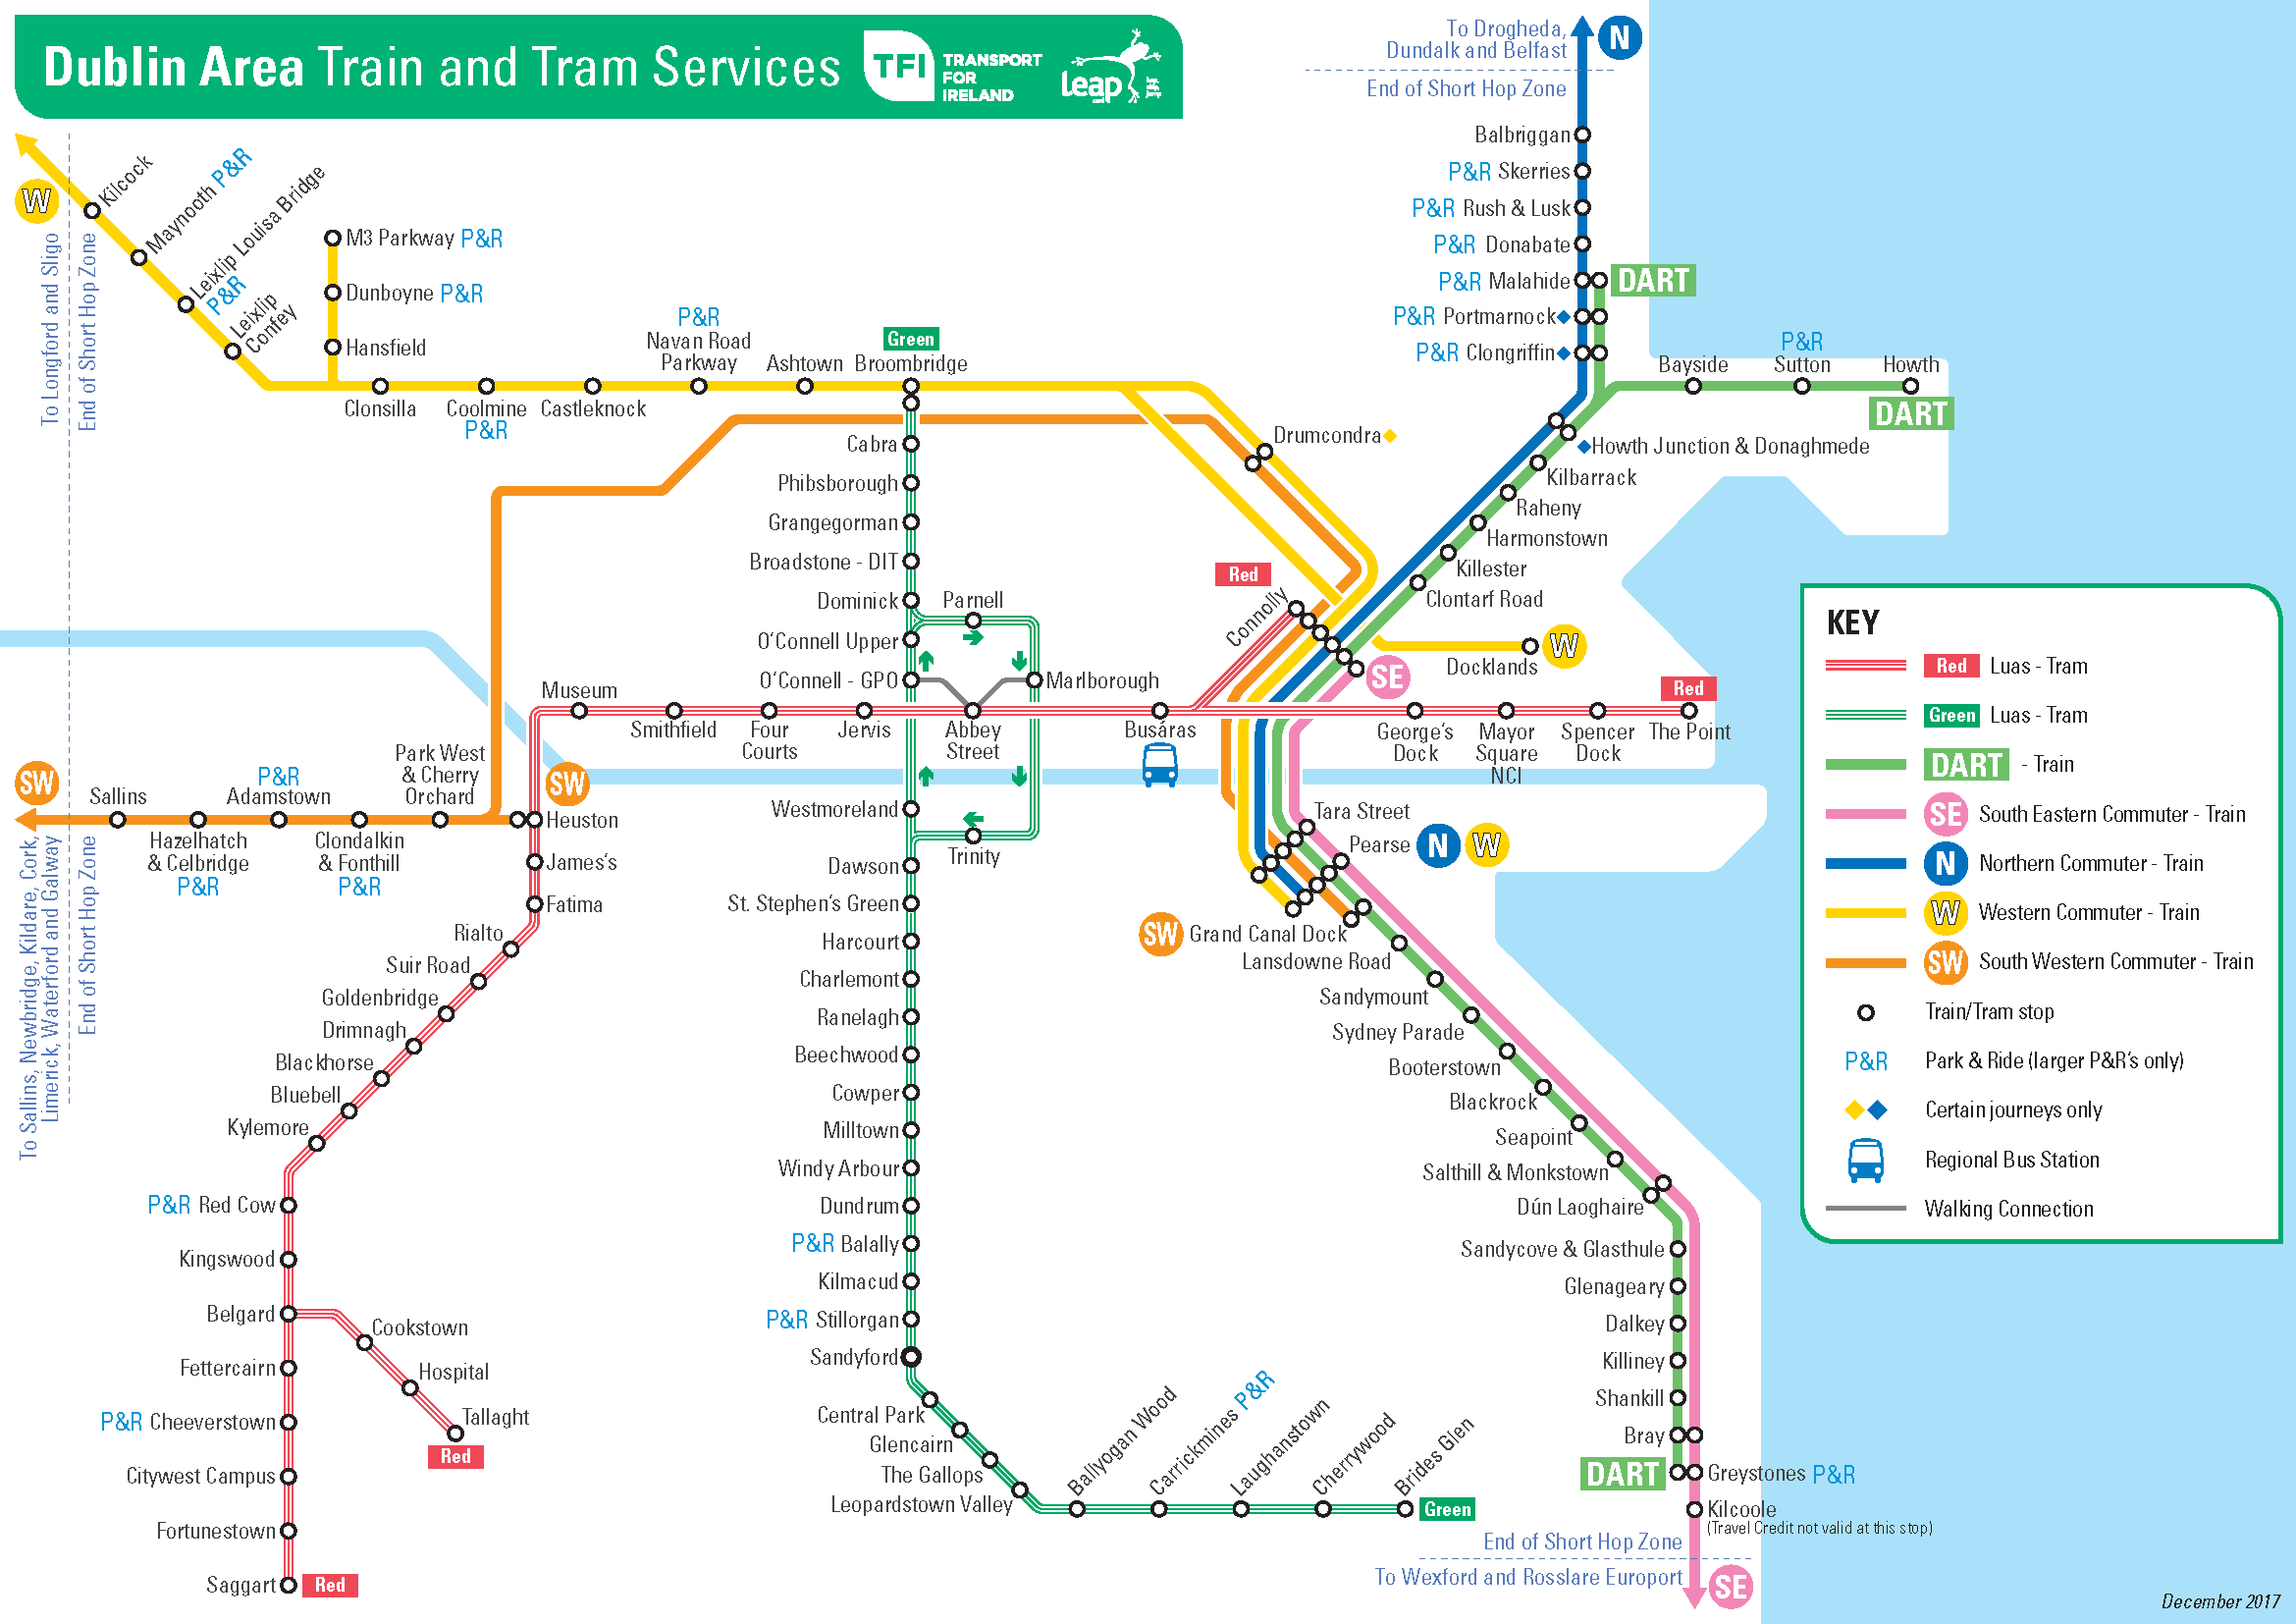 Transport For Ireland - Maps Of Public Transport Services - on